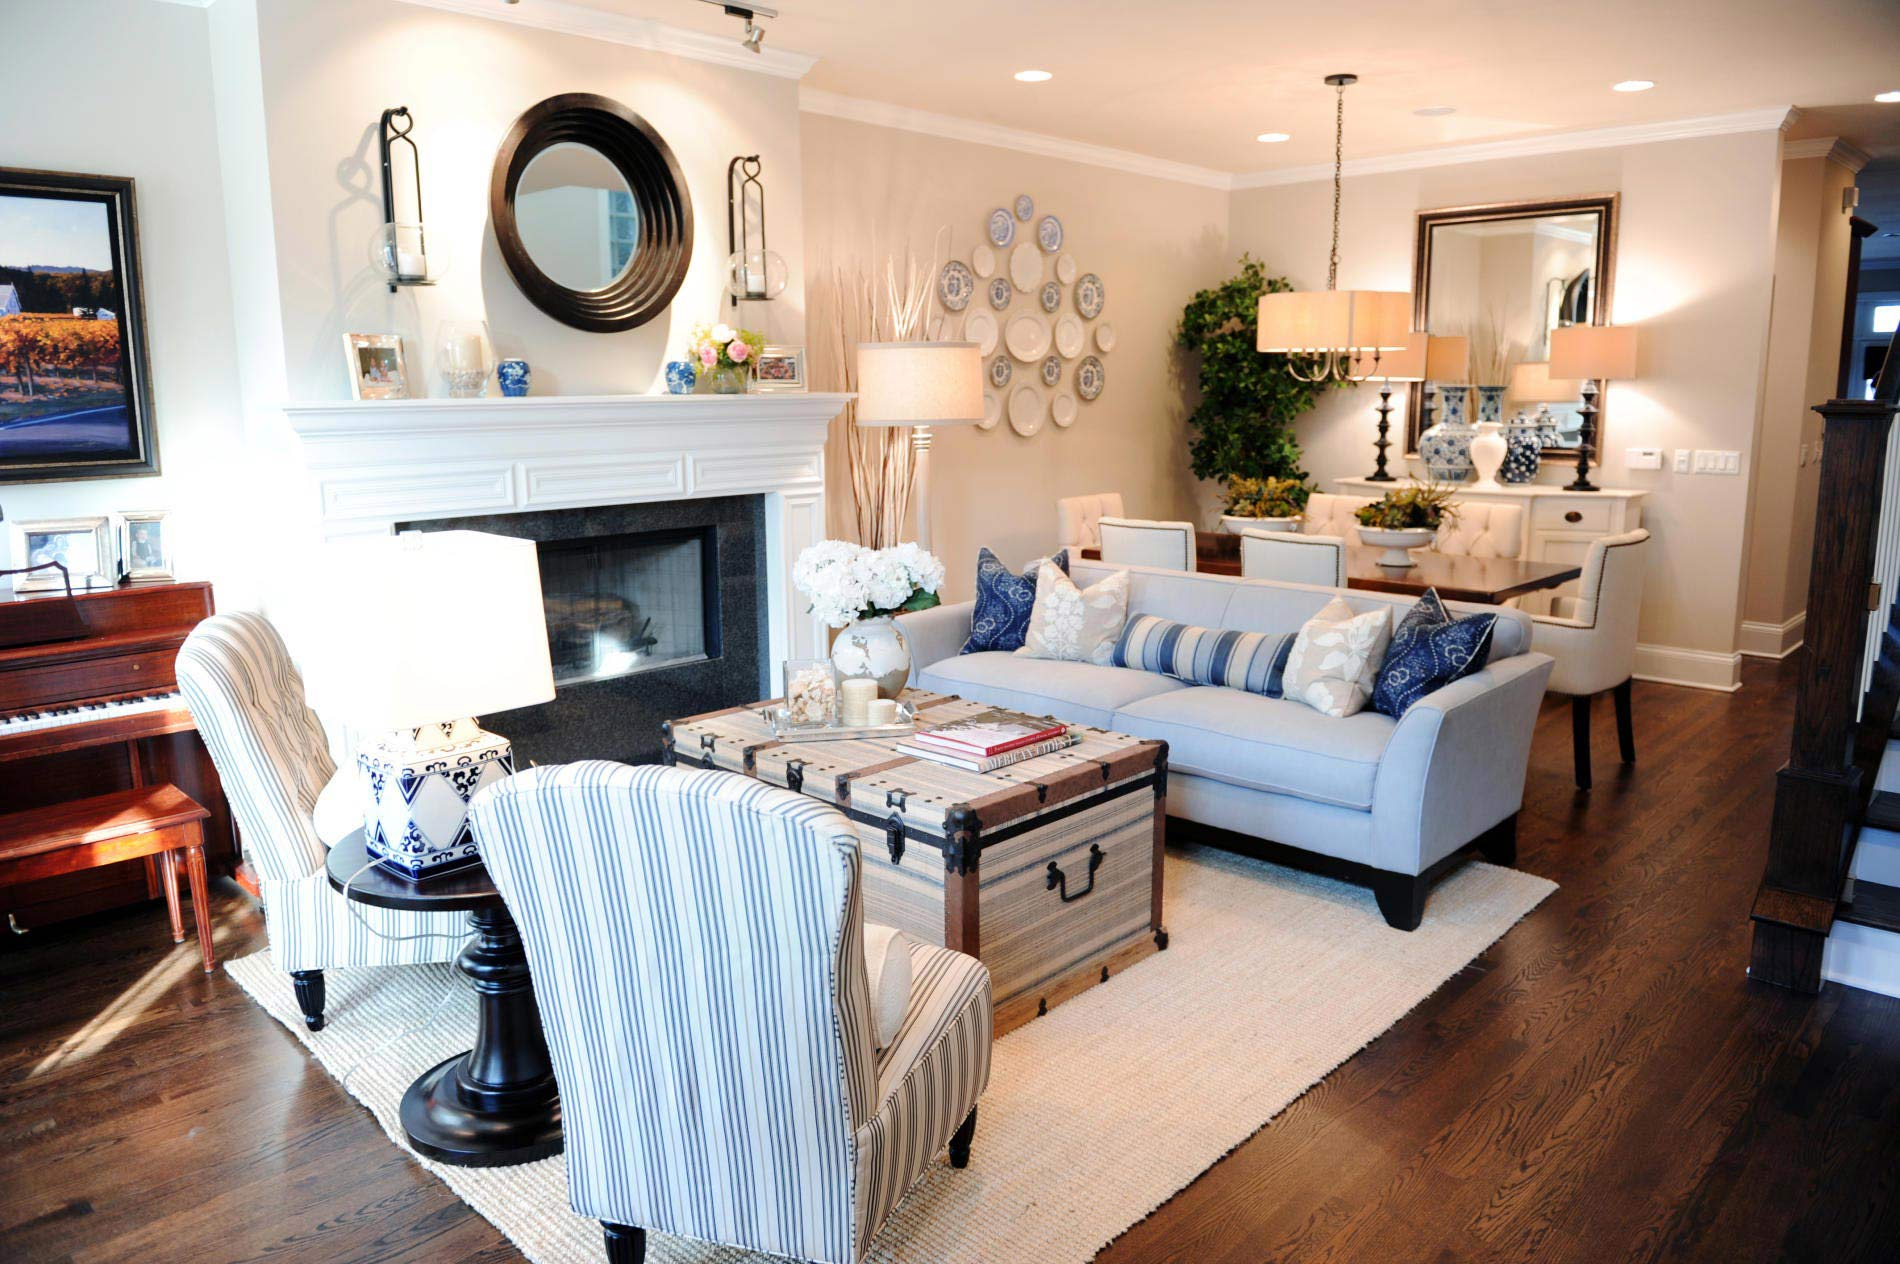 10-of-the-most-common-mistakes-that-should-be-avoided-in-interior-design-8